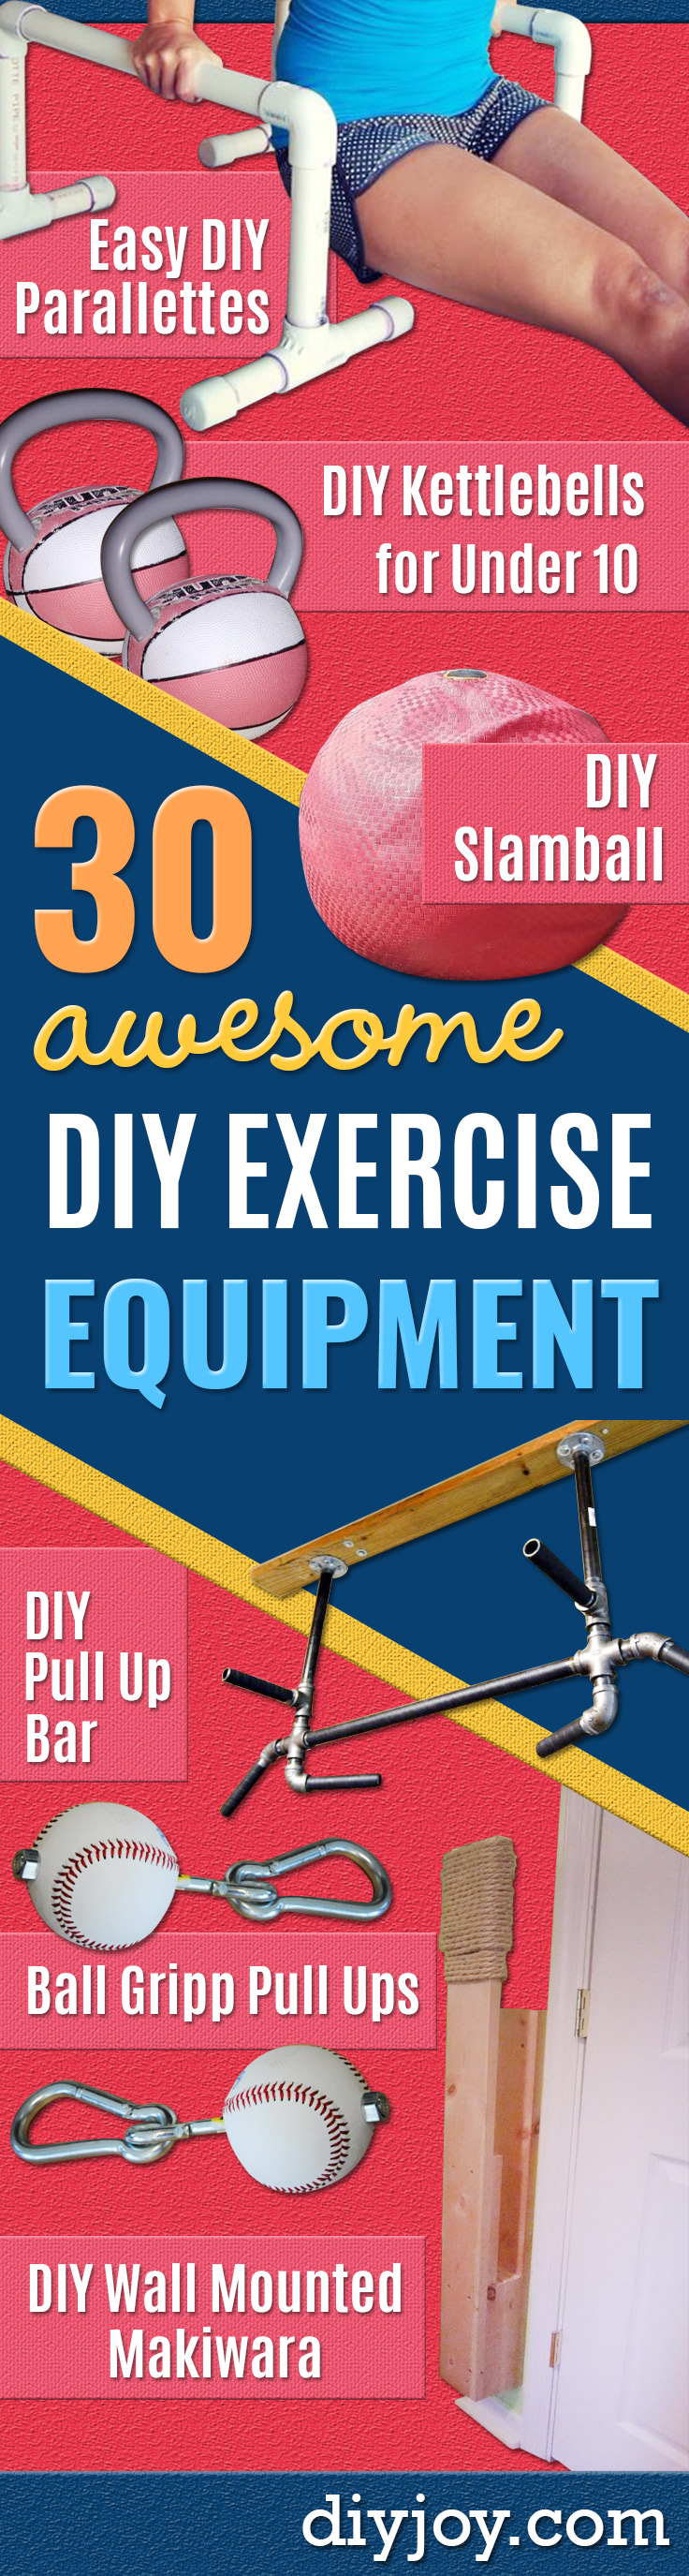 DIY Exercise Equipment Projects - Homemade Weights and Strength Training Projects - How To Build Simple and Easy Fitness Equipment, Yoga Mats, PVC Pipe Ideas for Butt Workouts, Strength Training and Do It Yourself Workouts At Home